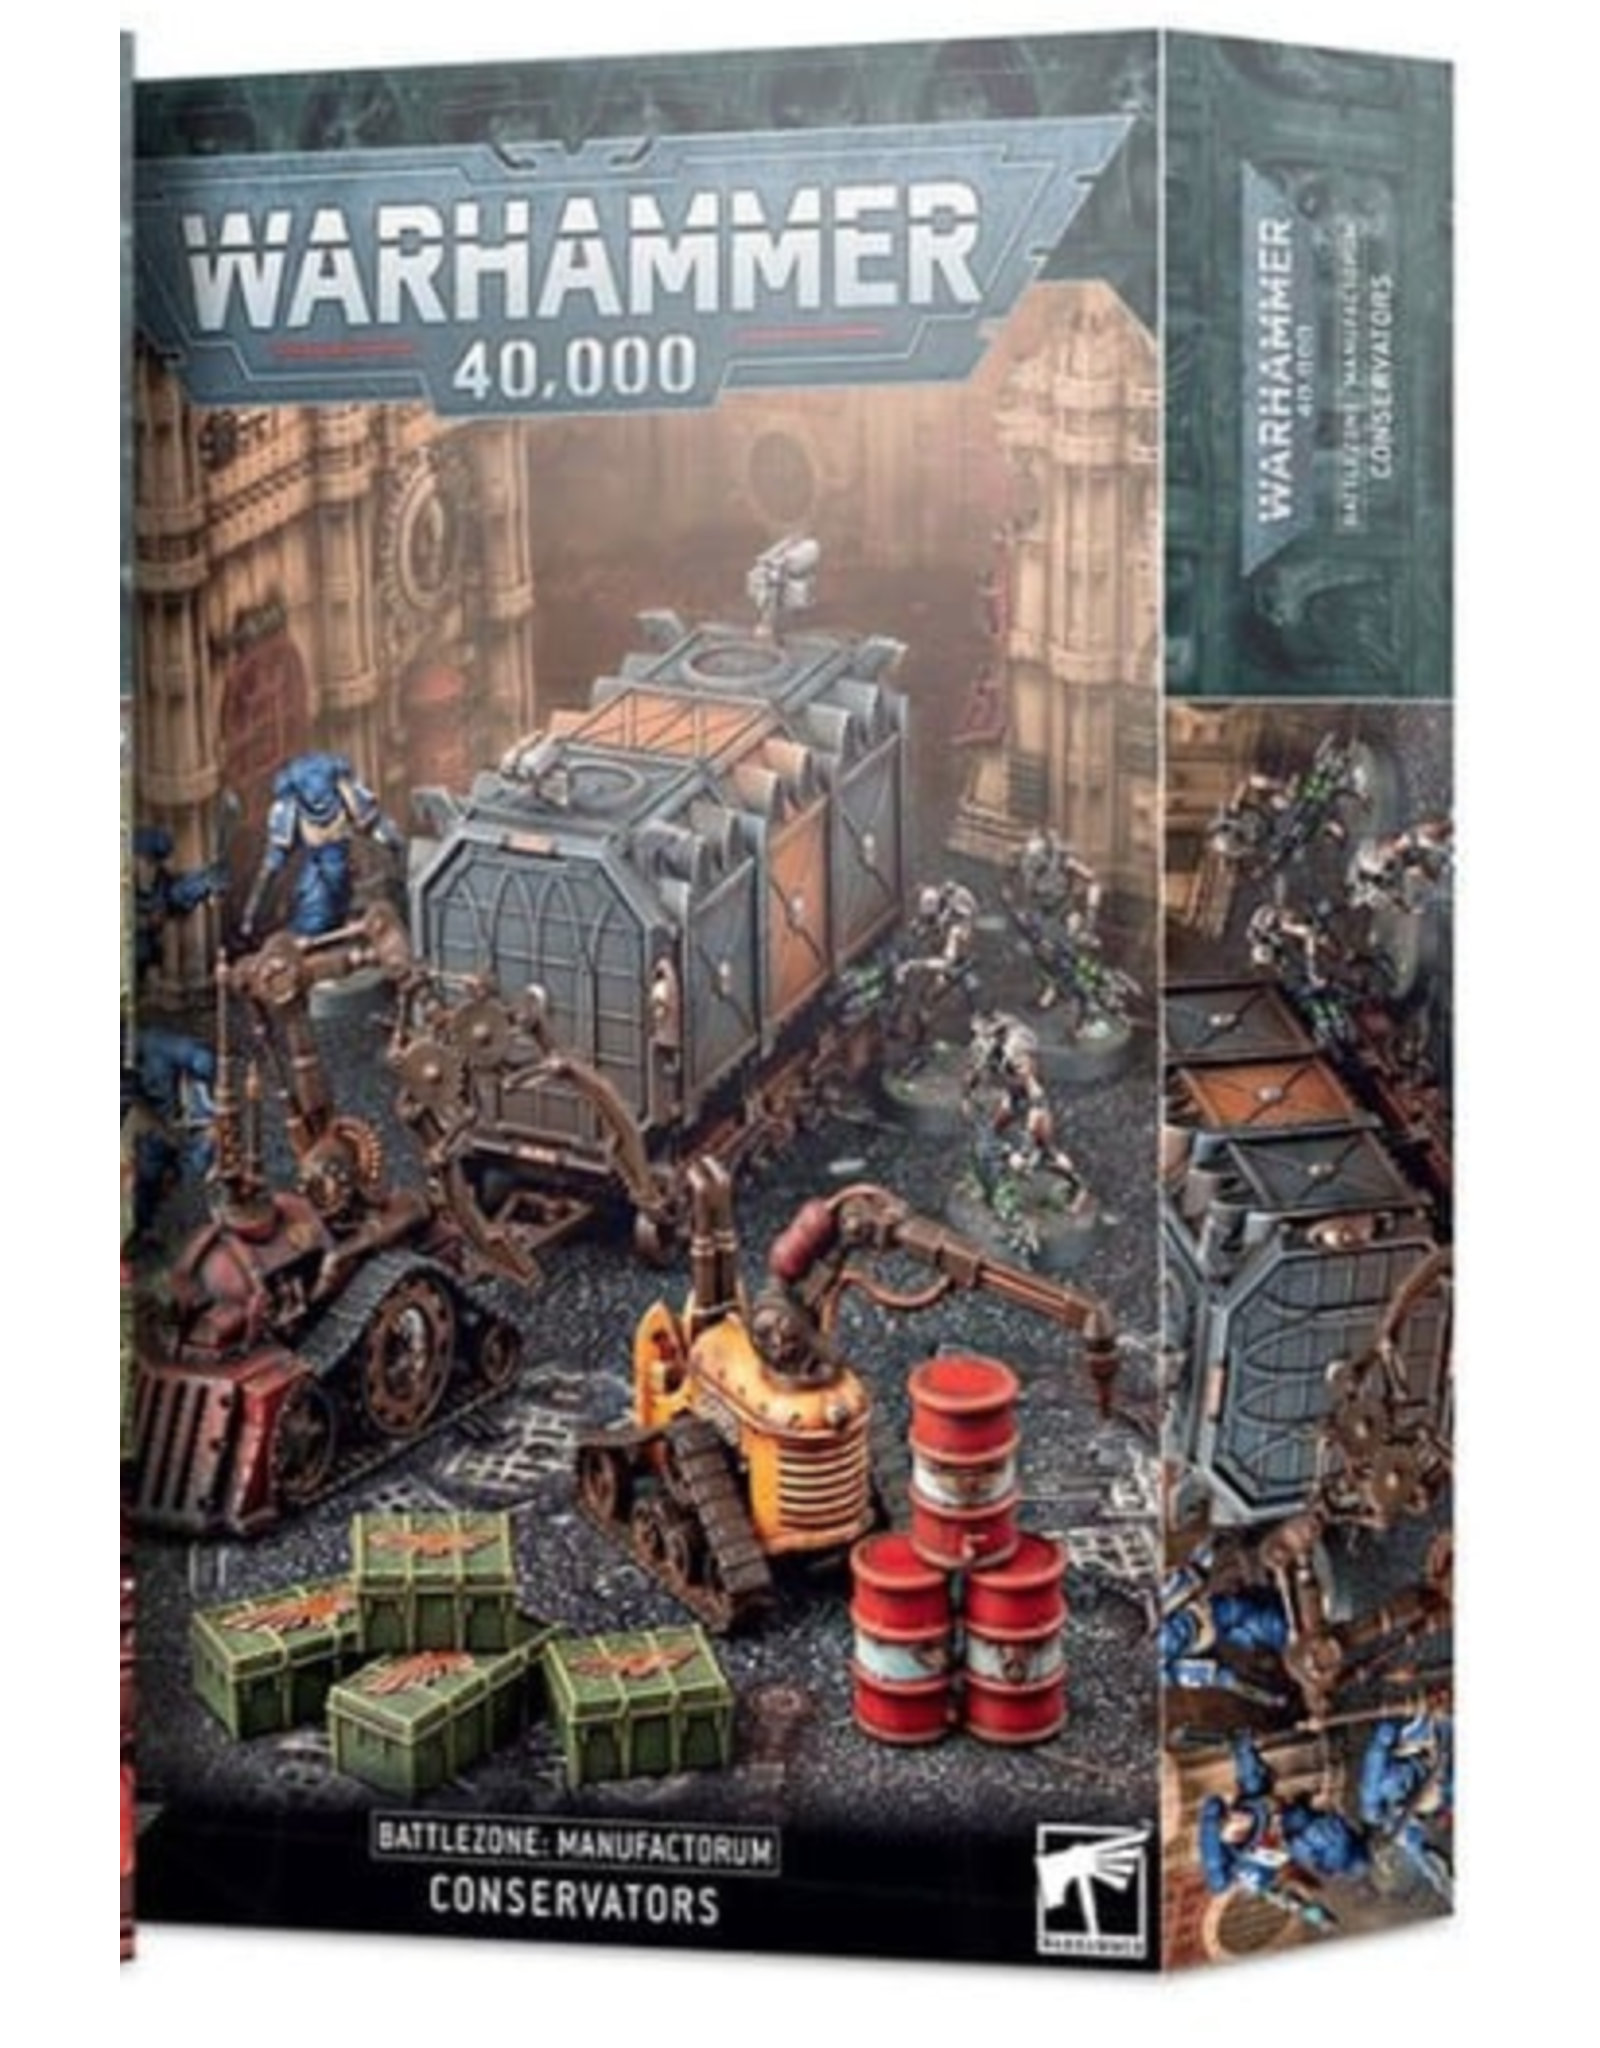 Warhammer 40K Battlezone Manufactorum: Conservators